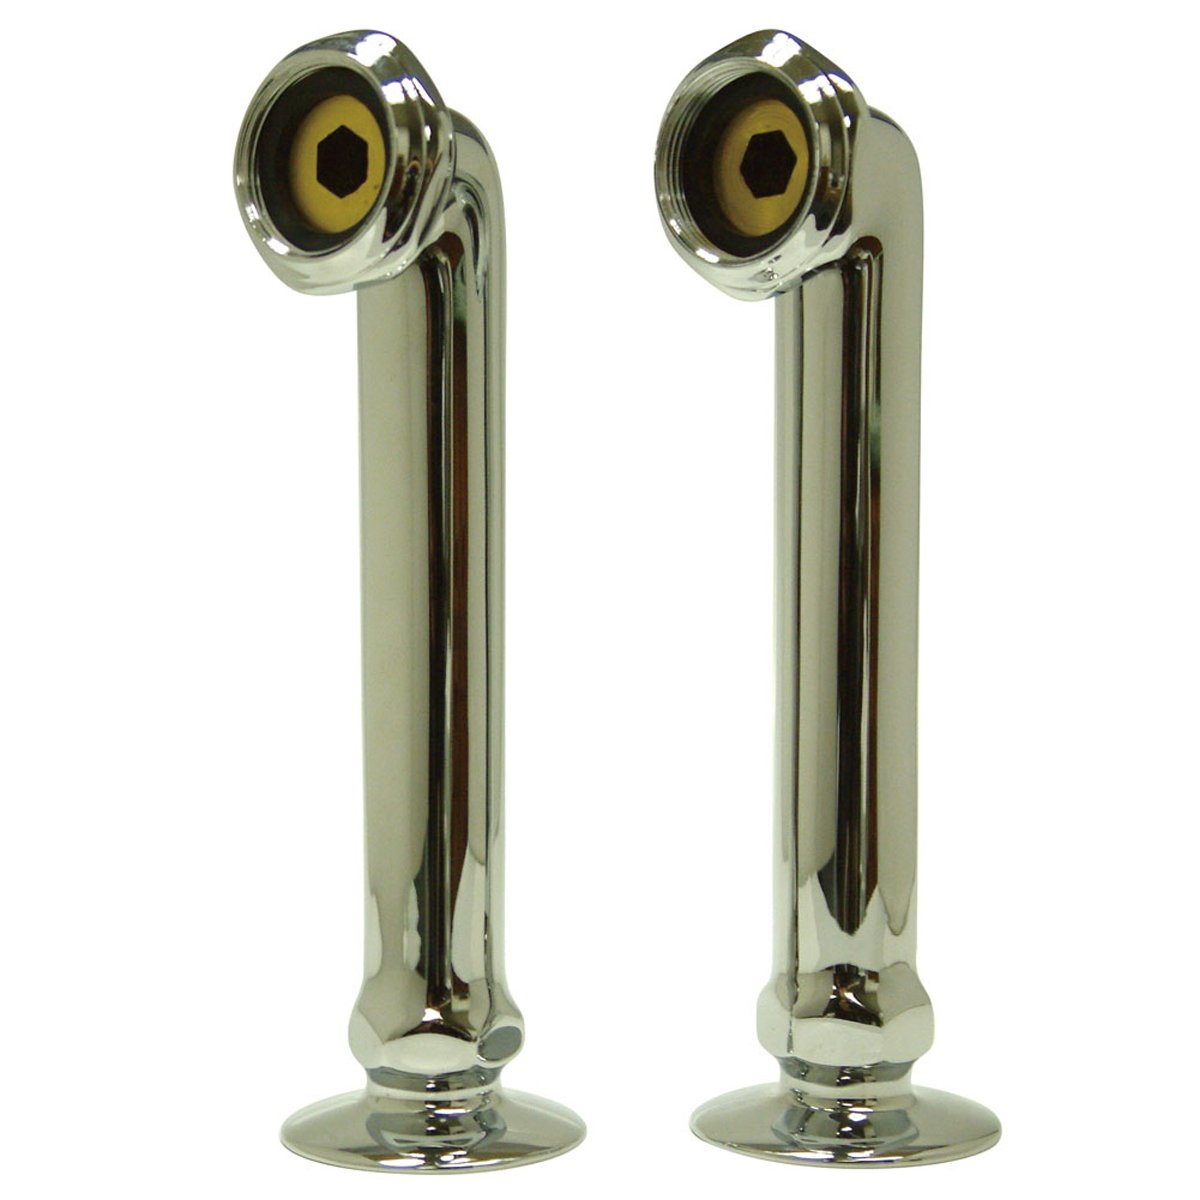 "Kingston Brass Vintage 6"" Deck Mount Risers for Clawfoot Tub Faucet-Bathroom Accessories-Free Shipping-Directsinks."